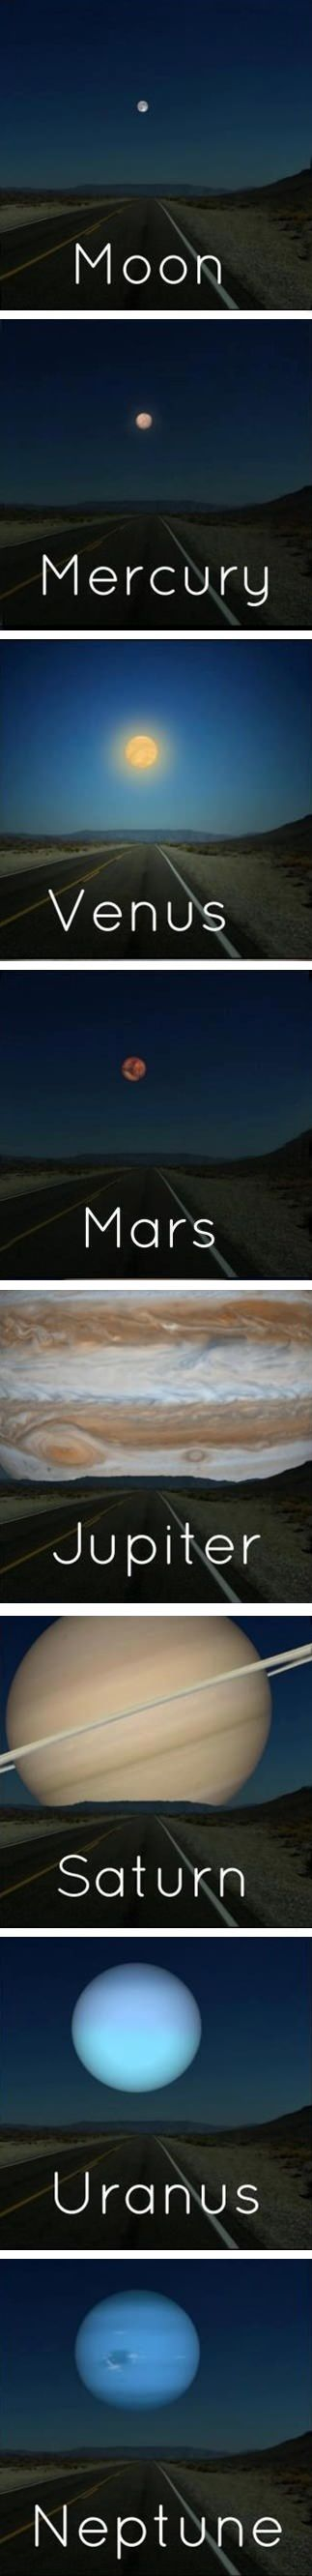 ♥ What if the other planets were as close as the moon